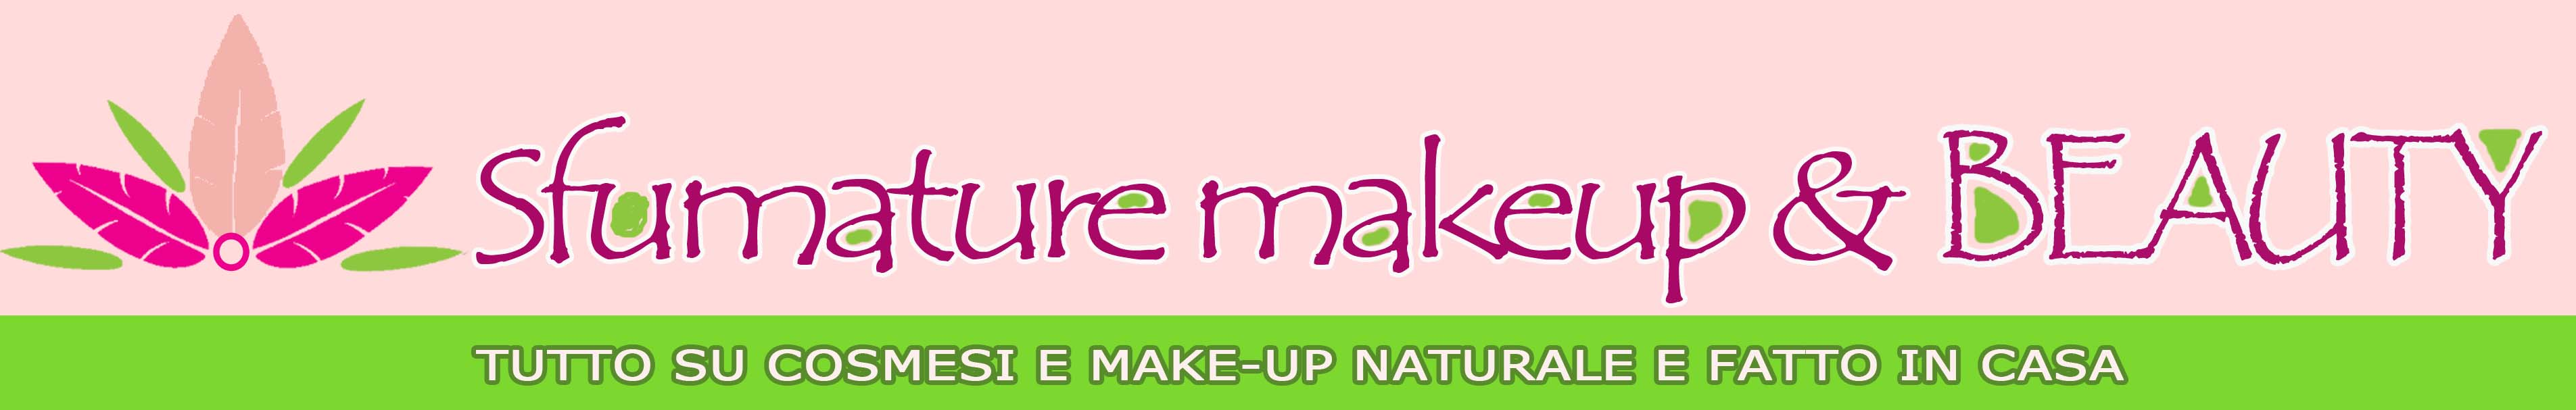 Sfumature makeup & BEAUTY